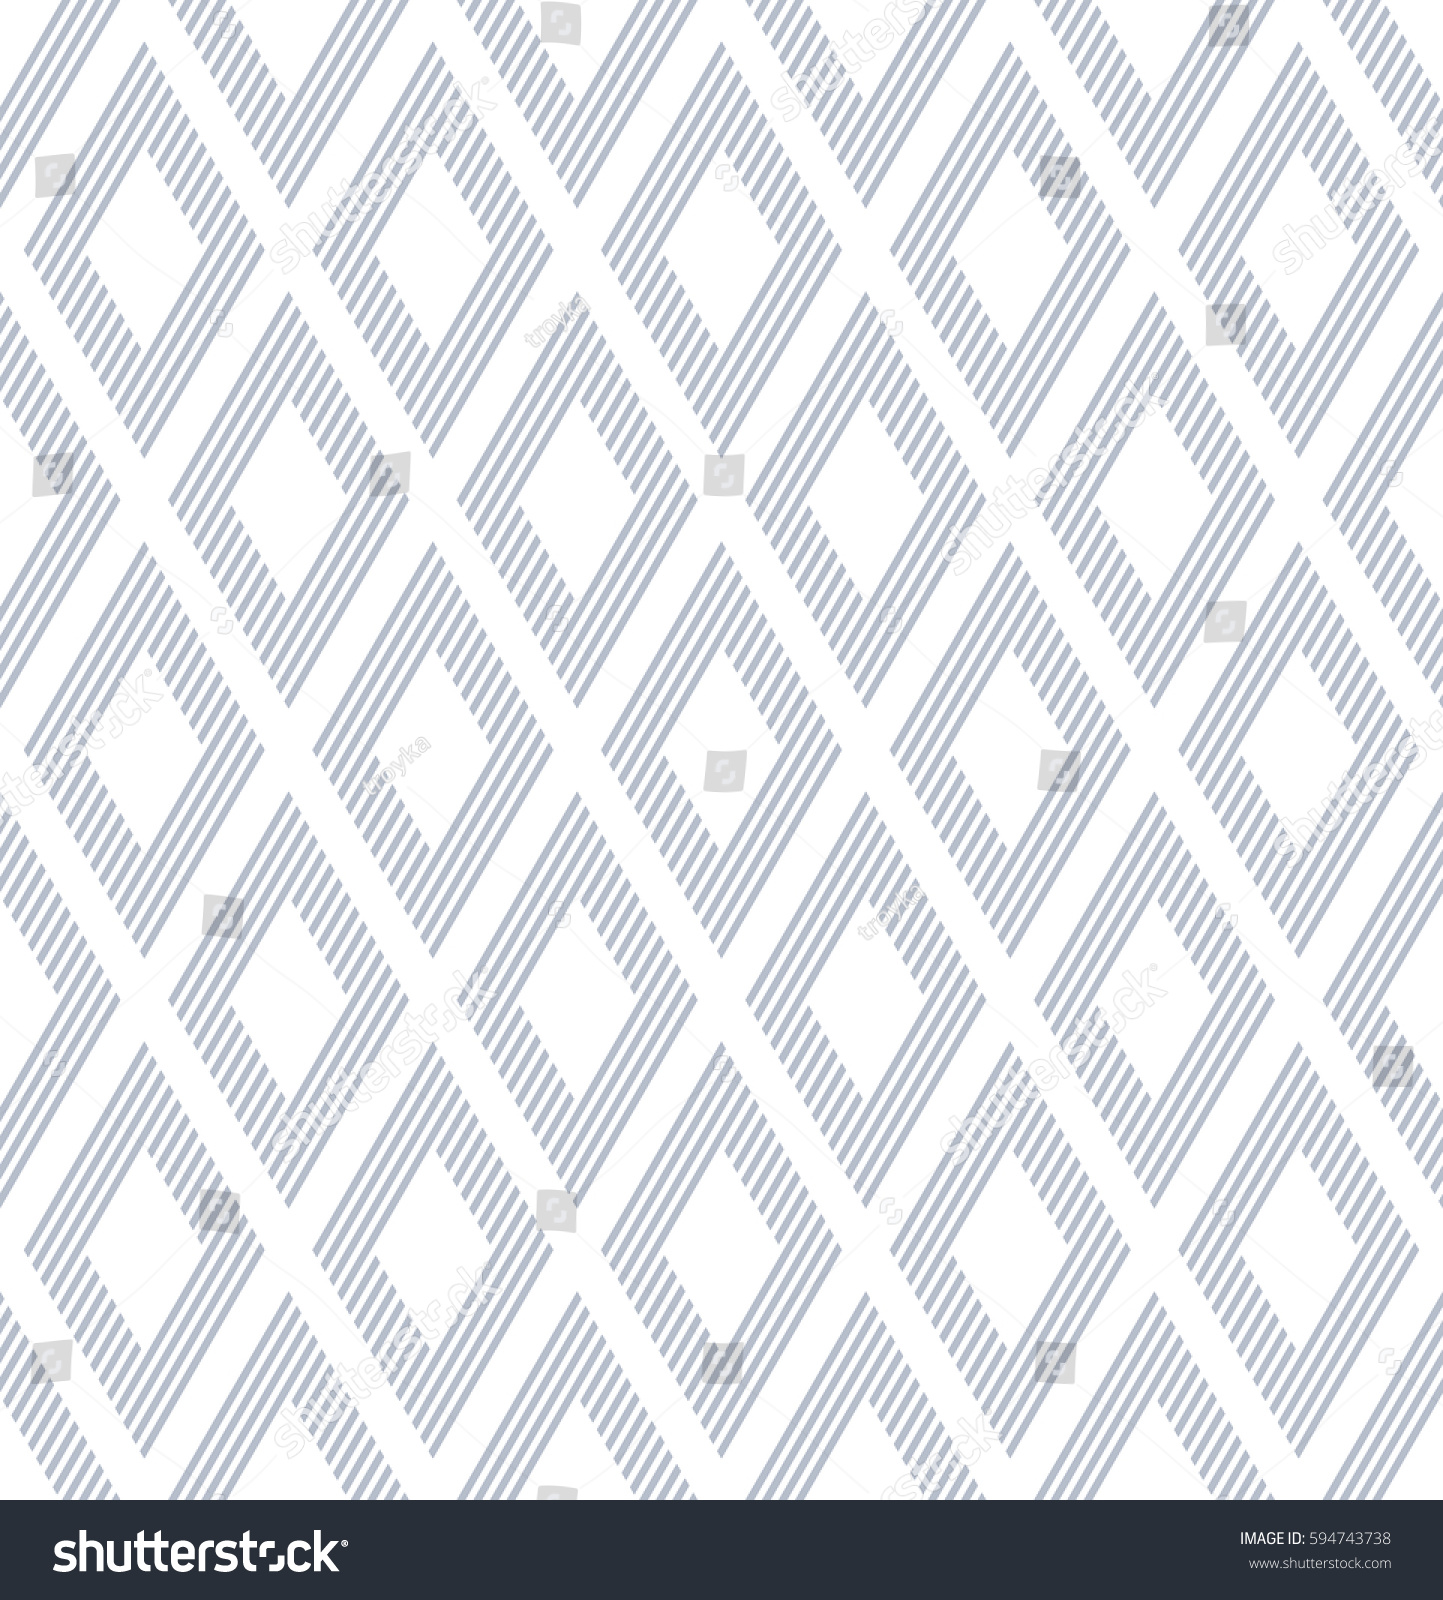 Line Texture Vector : Seamless geometric diamonds pattern lines texture stock